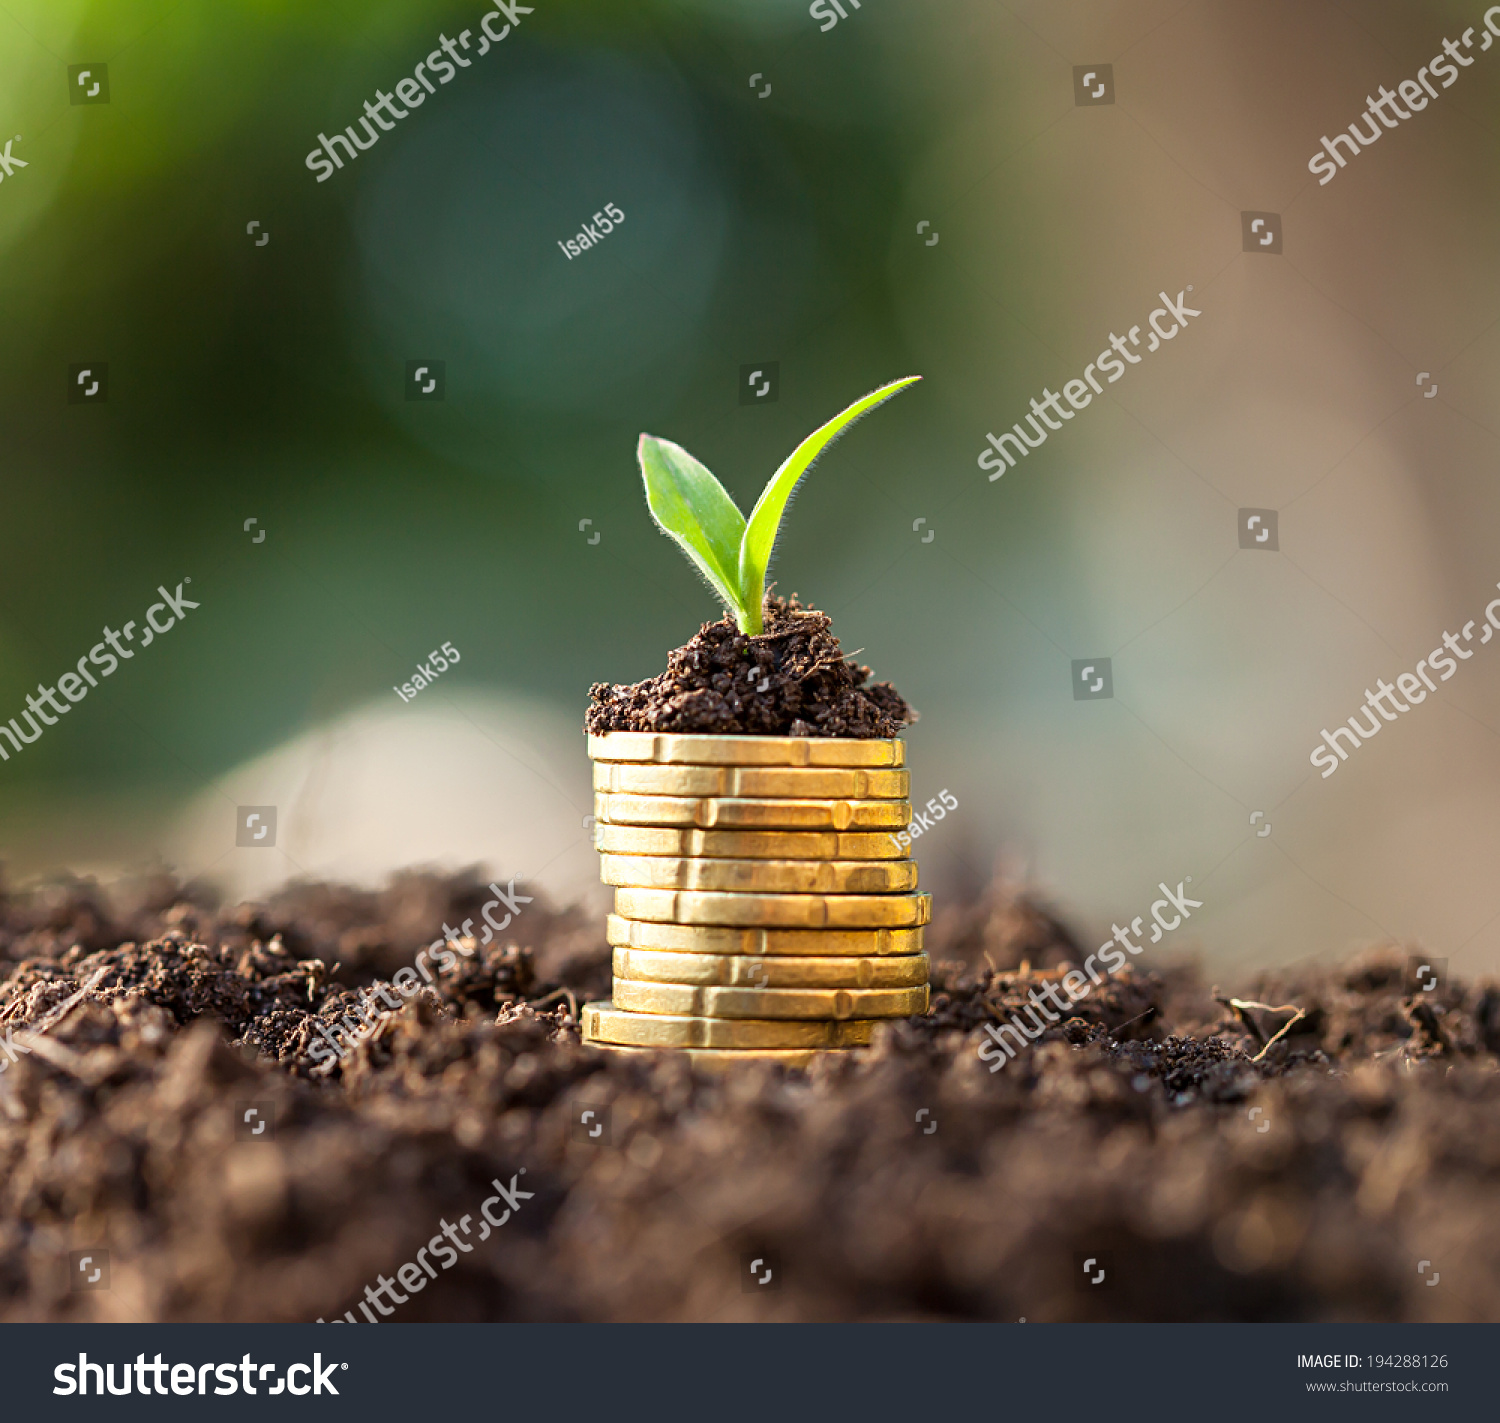 Golden Coins Soil Young Plant Money Stock Photo 194288126 - Shutterstock